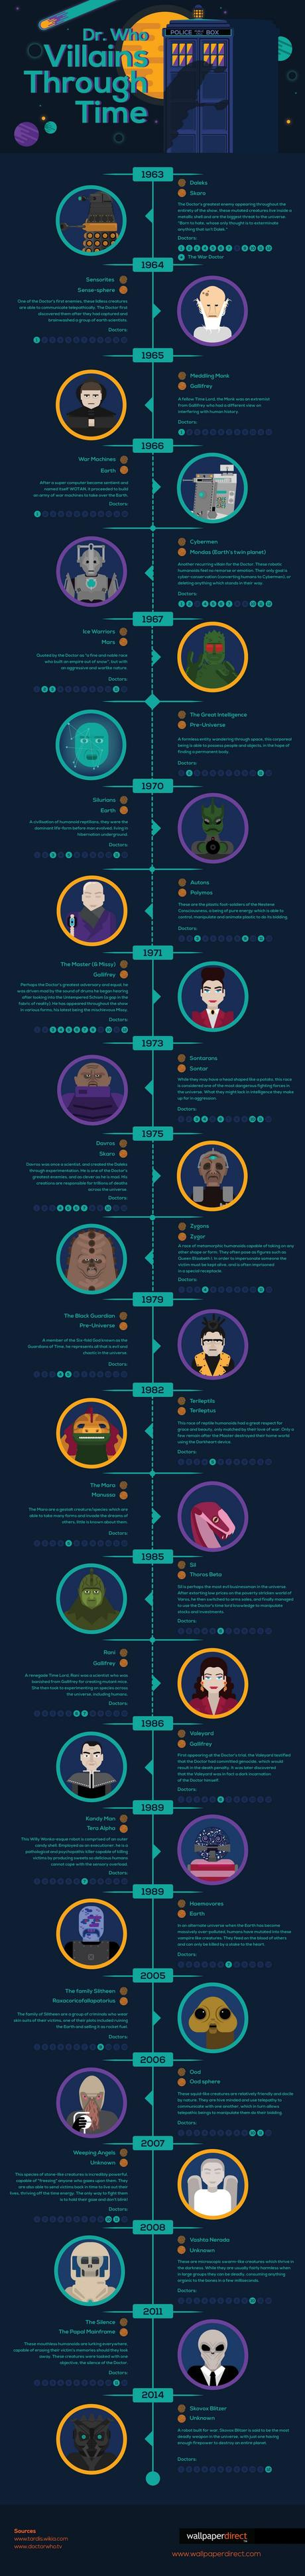 dr-who-villains-infographic